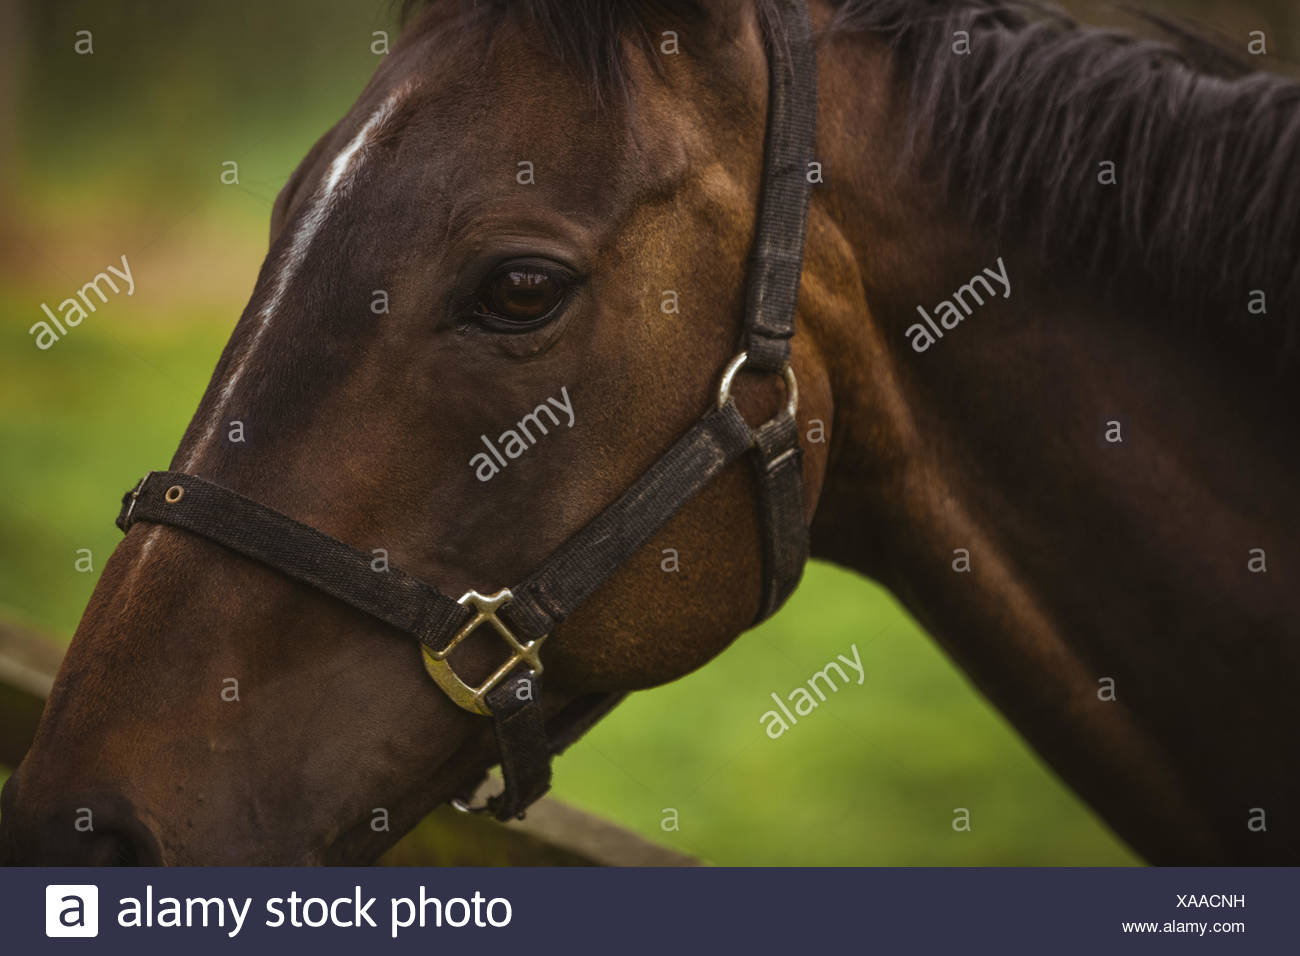 Side view of thorough bred horse - Stock Image